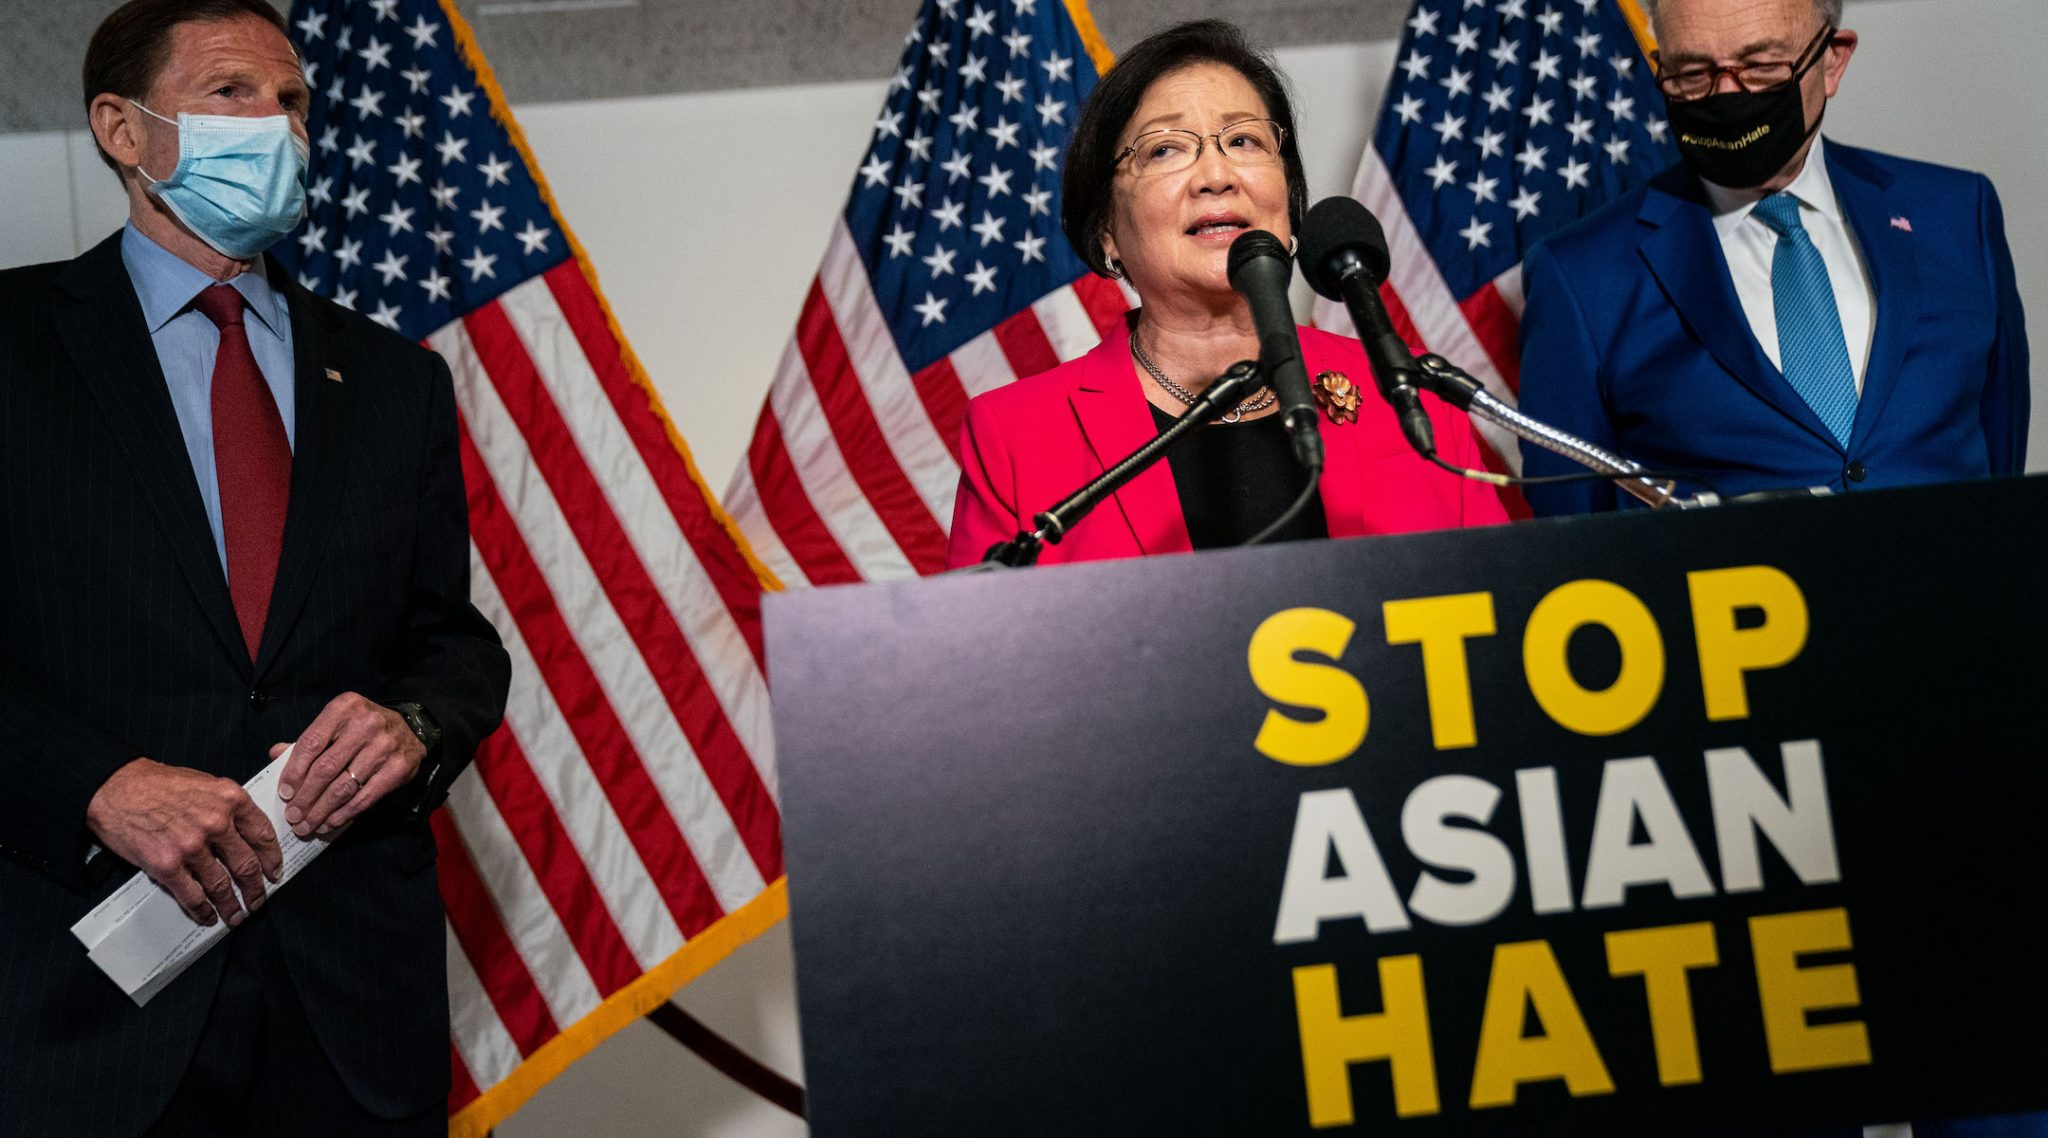 Sen. Mazie Hirono, D-Hawaii, who introduced the COVID-19 Hate Crimes Act, speaks in Washington, D.C. on April 20, 2021. (Photo/JTA-Kent Nishimura-Los Angeles Times via Getty Images)